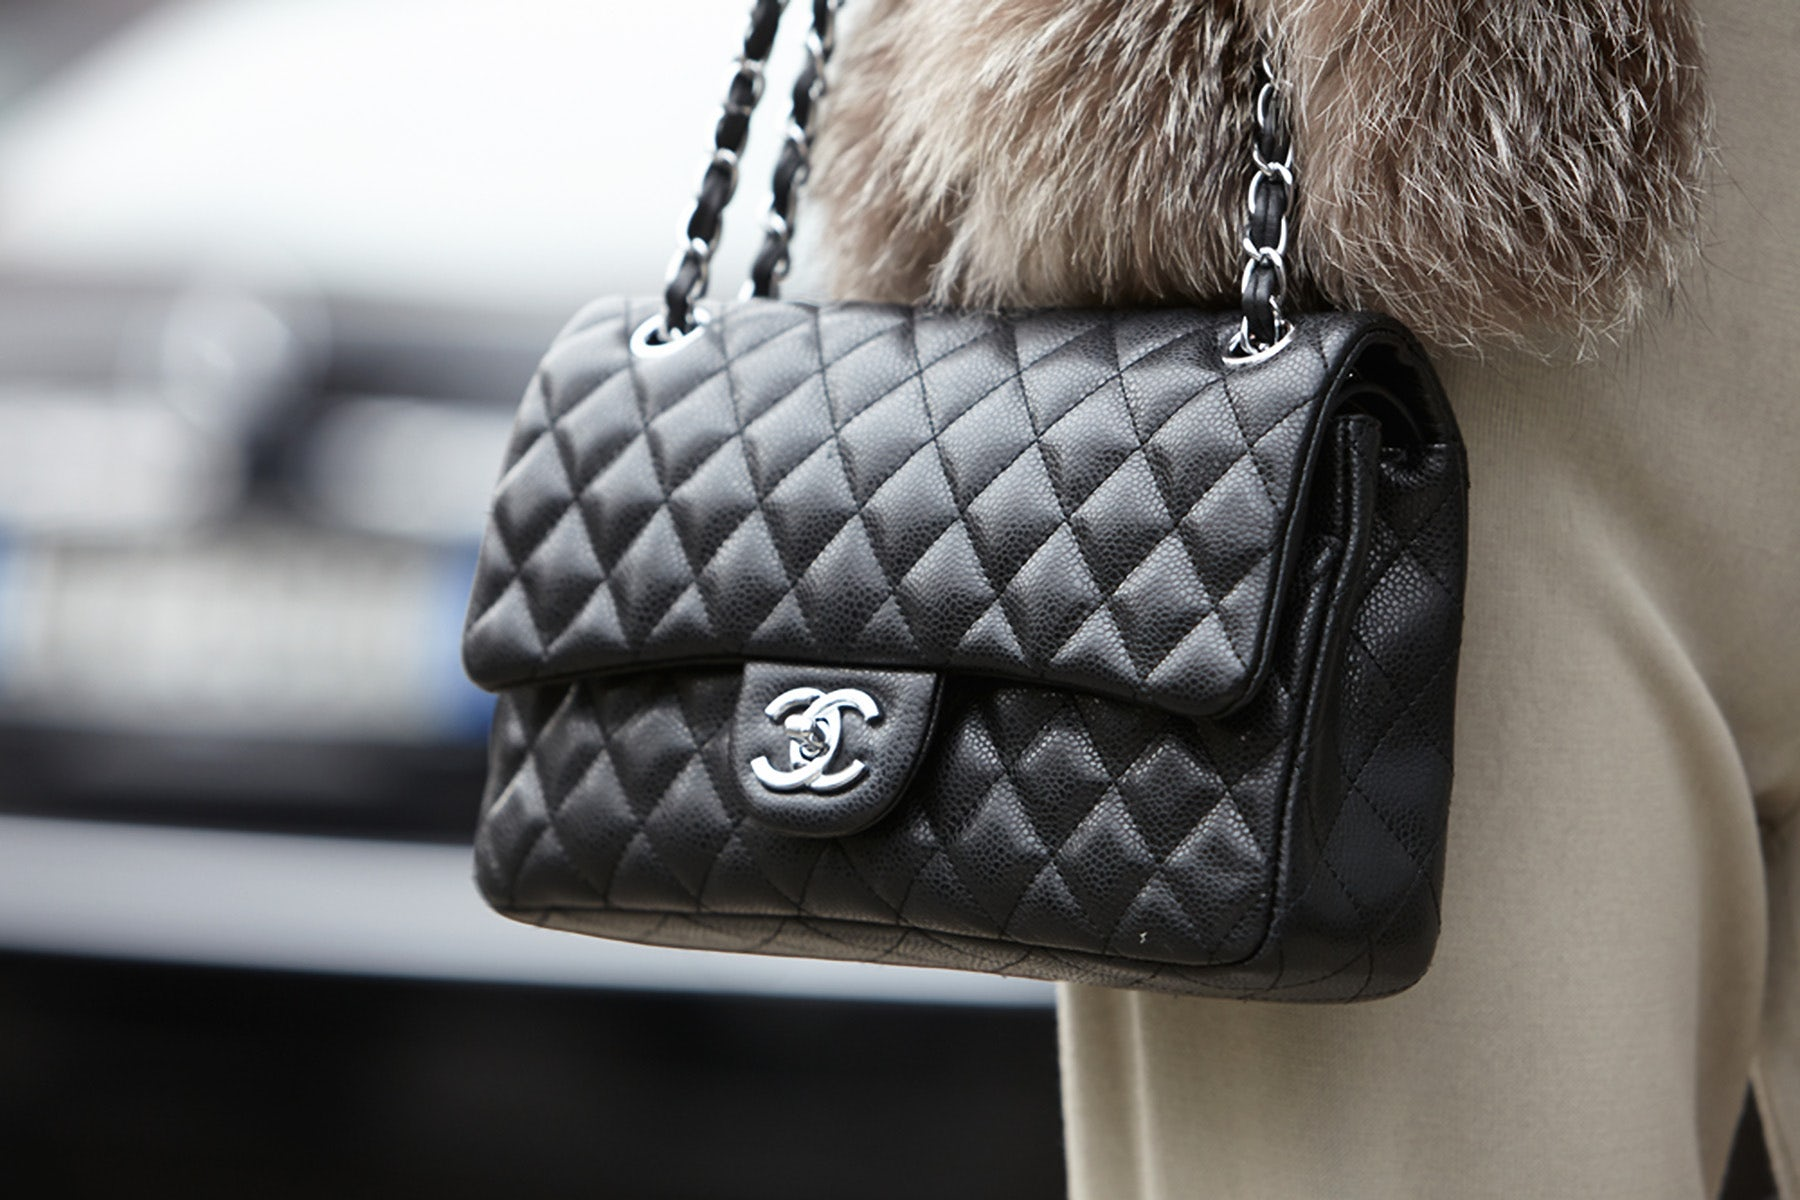 Chanel handbag | Source: Shutterstock